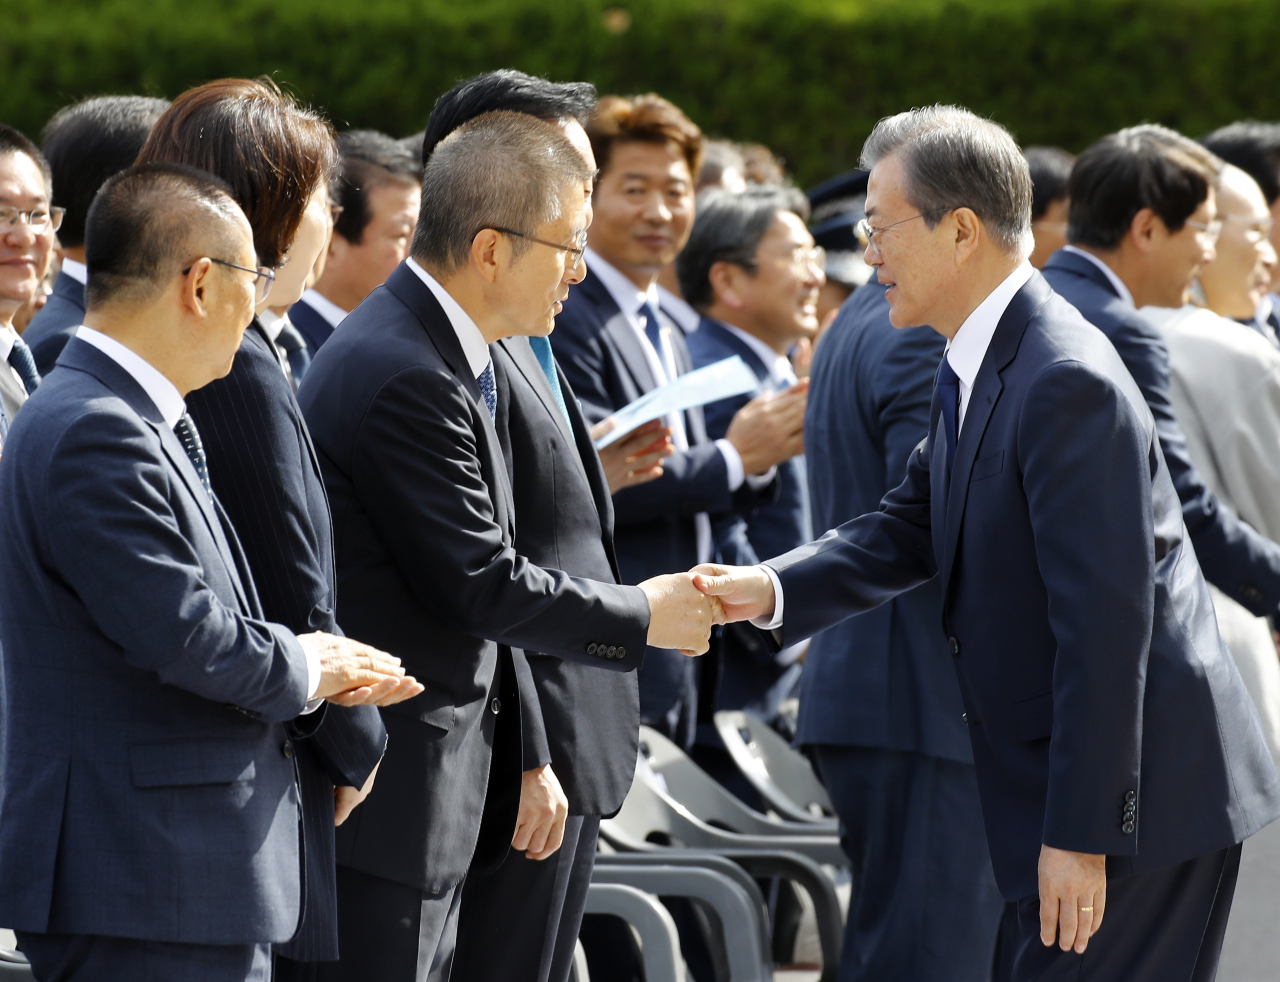 President Moon Jae-in shakes hands with Hwang Kyo-ahn, chairman of main opposition Liberty Korea Party, at the Busan-Masan Democratic Protests event in Busan on Wednesday. Yonhap